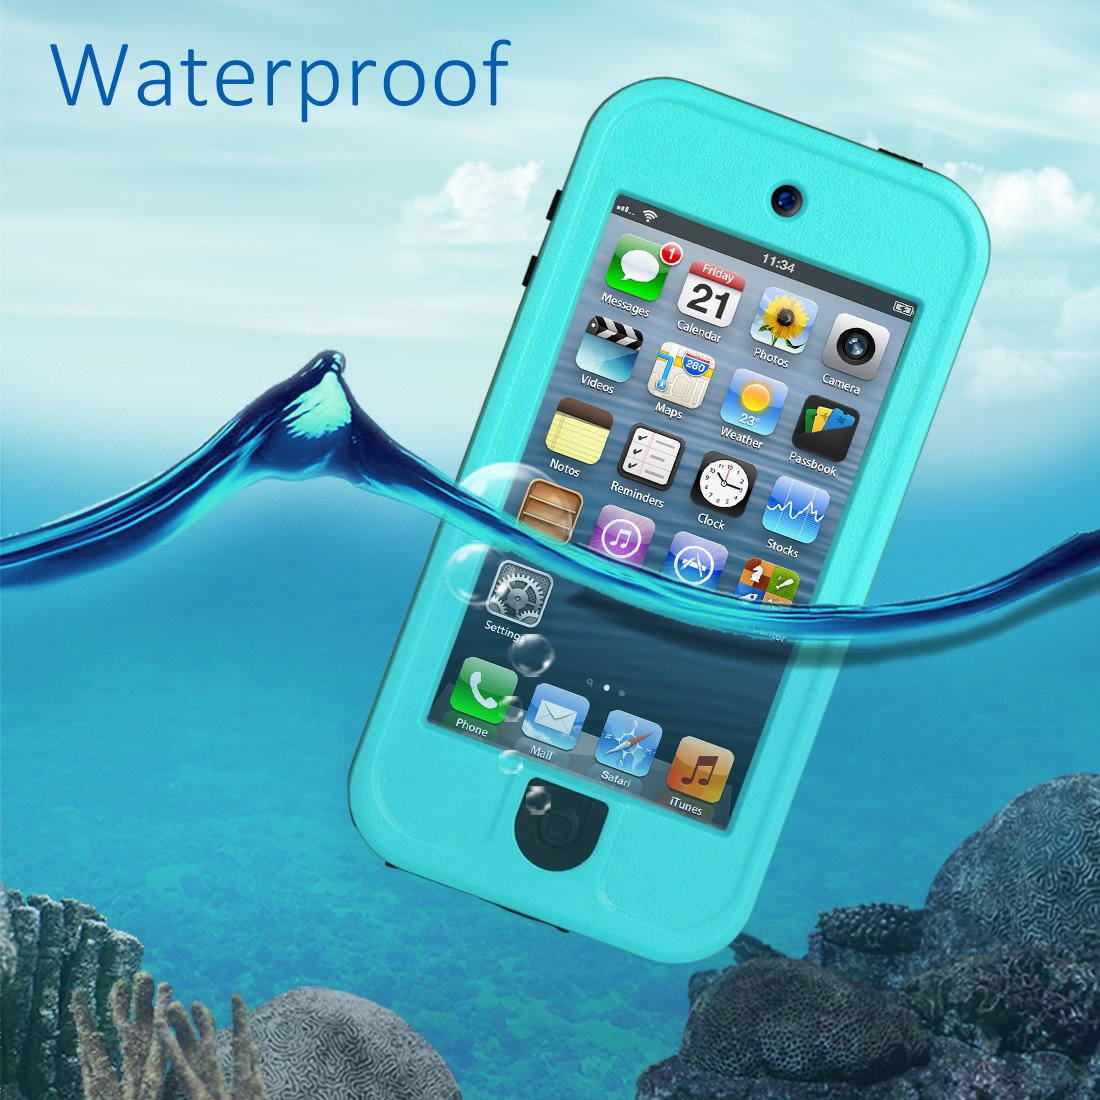 Waterproof Case for iPod 5 iPod 6, Meritcase Waterproof Shockproof Dirtproof Snowproof Case Cover with Kickstand for Apple iPod Touch 5th/6th Generation for Swimming Diving Surfing Snorkeling (Blue) by meritcase (Image #2)